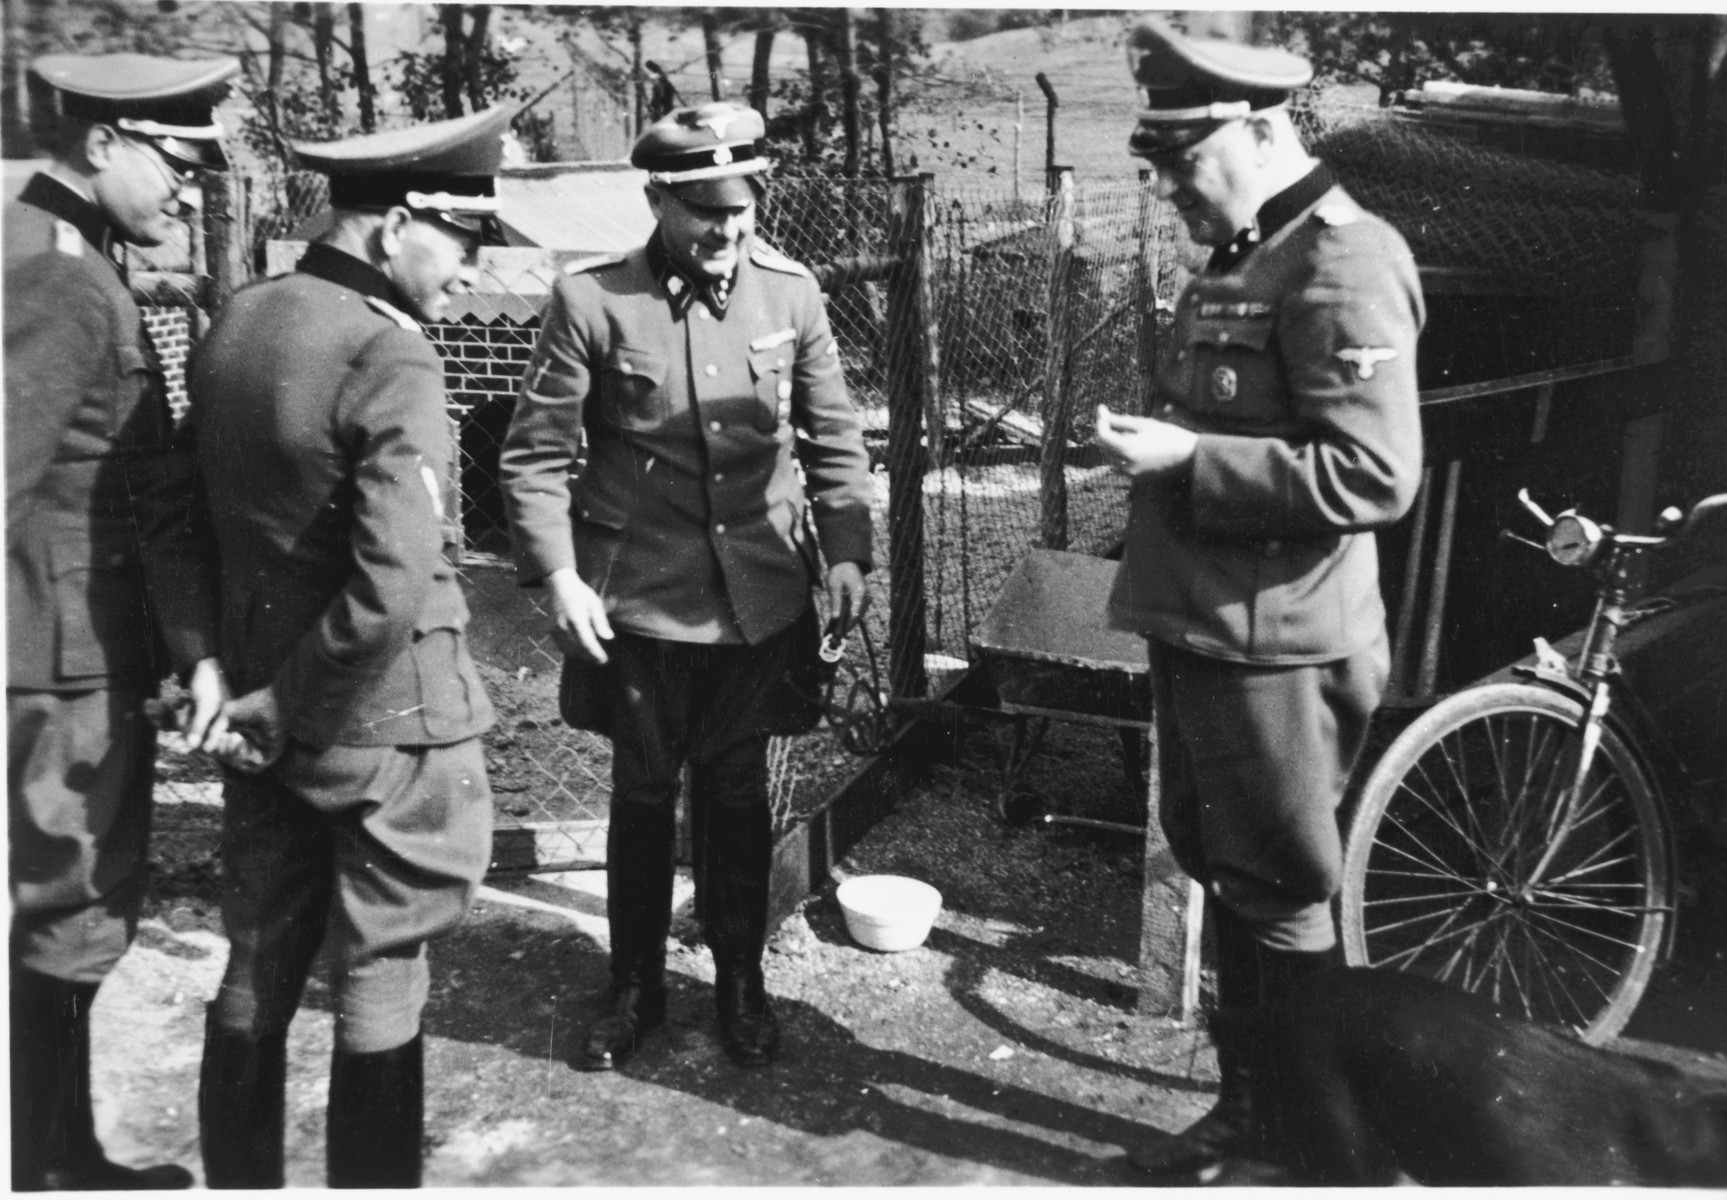 Four SS officers including Commandant Hermann Pister have a conversation on the grounds of the Hinzert concentration camp (a sub-camp of Buchenwald).